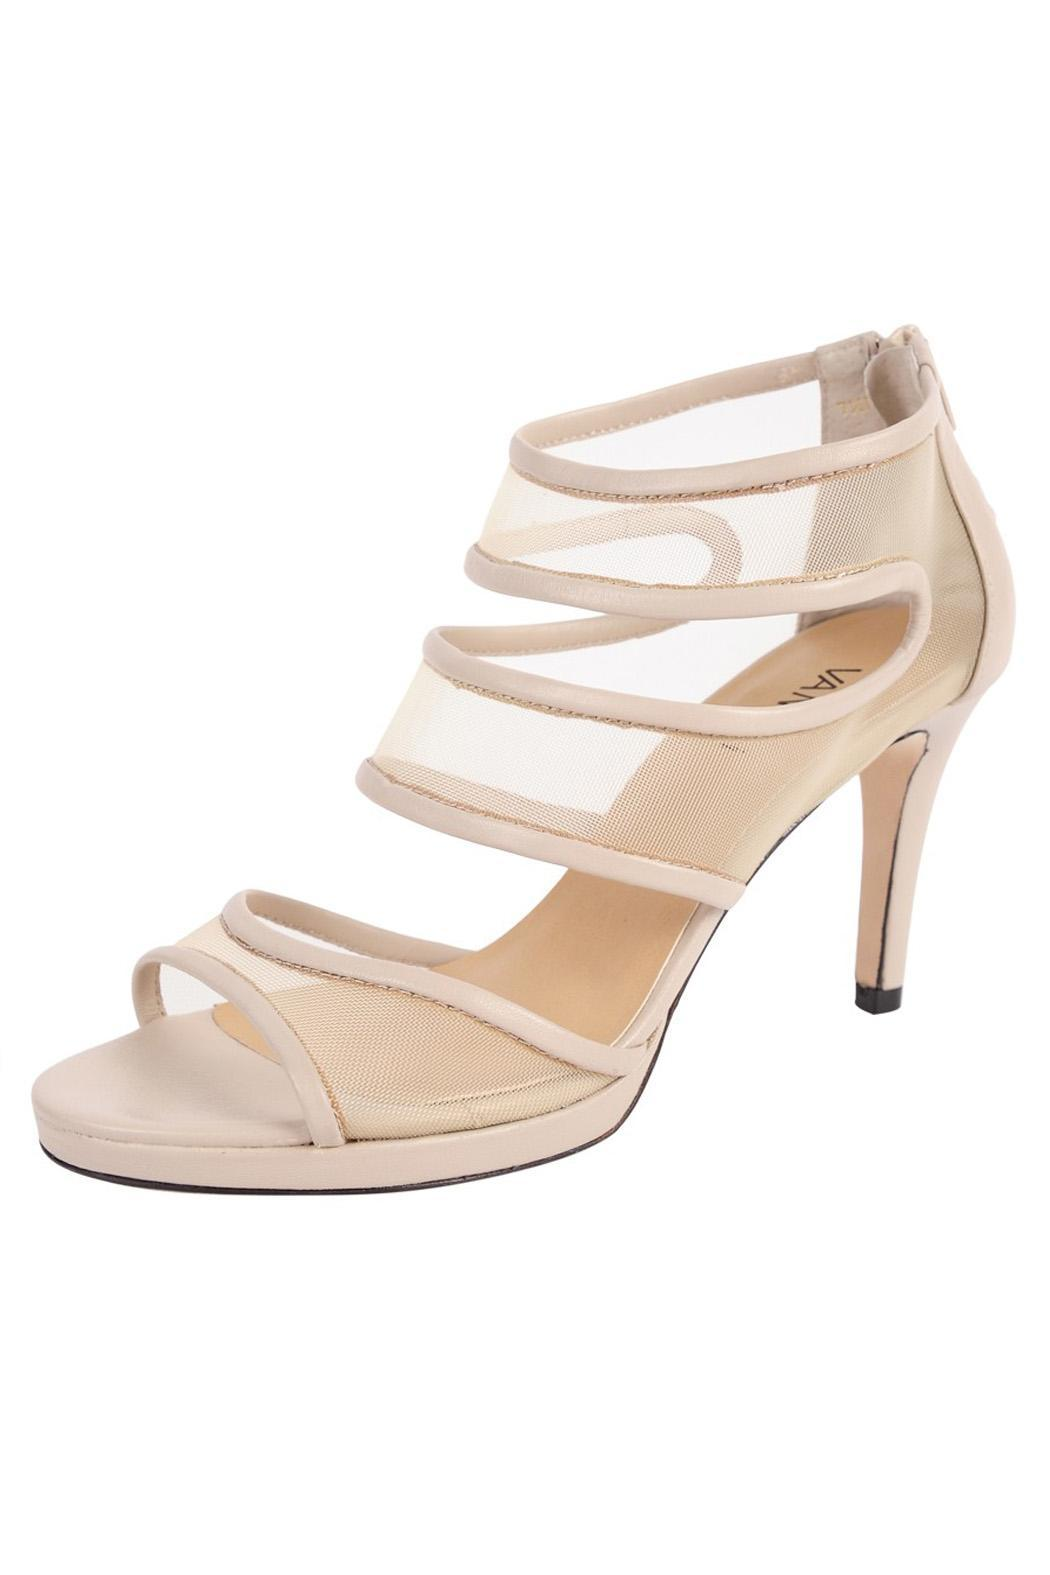 621d14e70b Vaneli Nude Mesh Heel from South Carolina by Baehr Feet Shoe ...